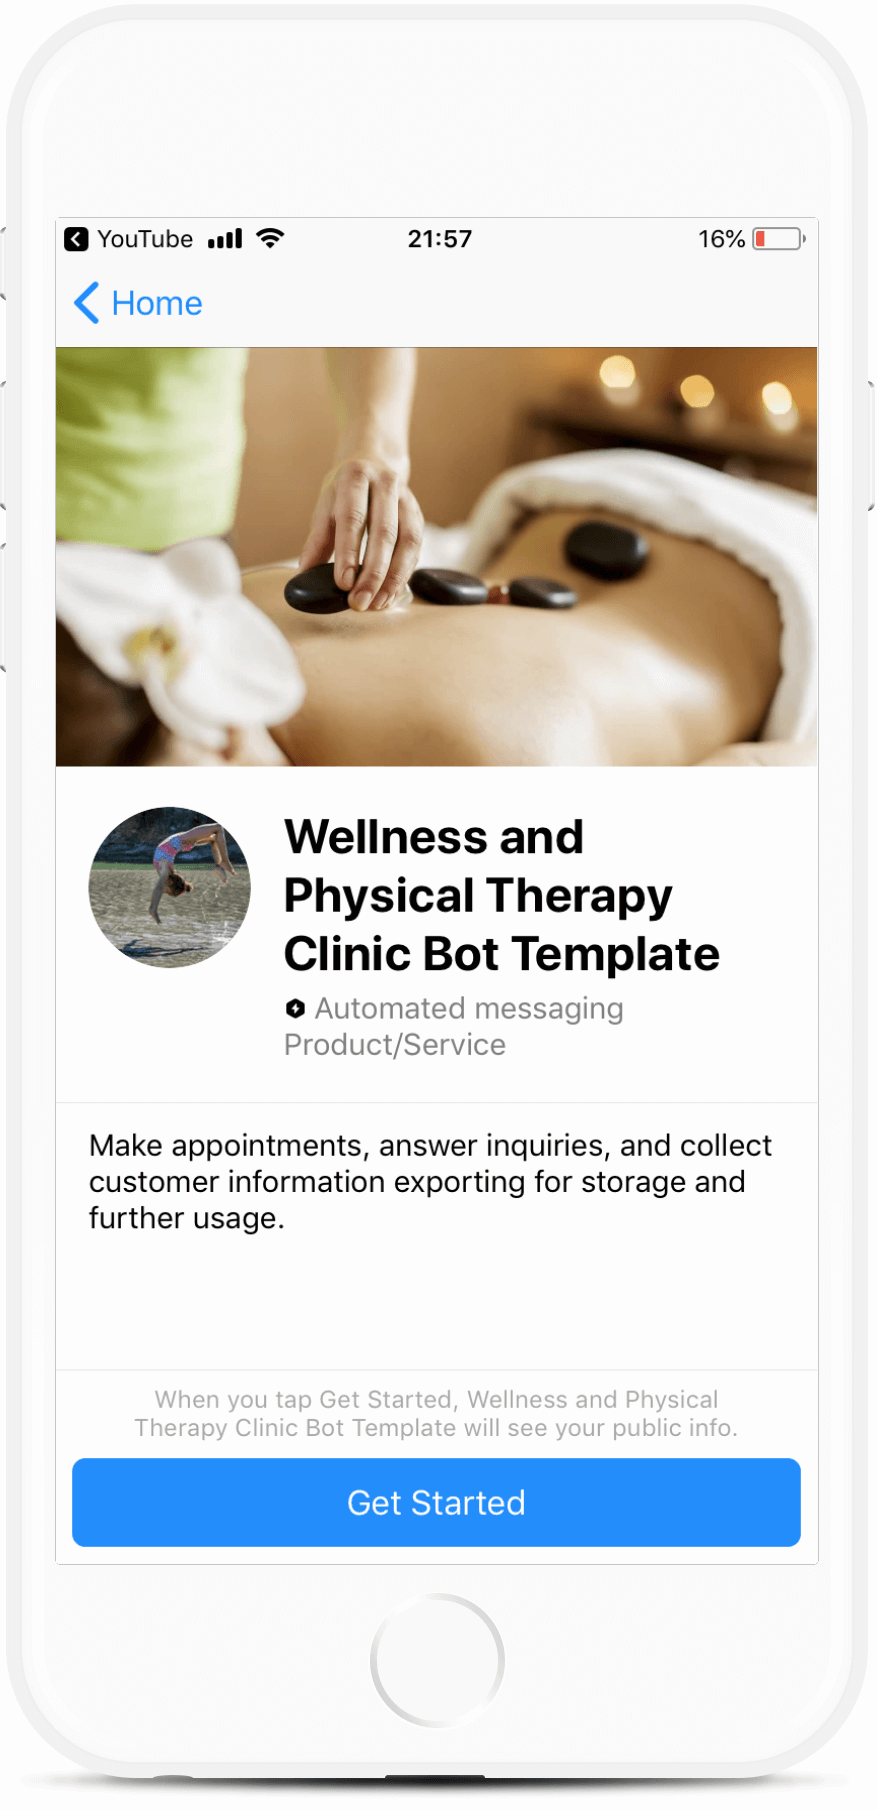 Wellness and Physical Therapy Clinic Bot Template bot screenshot